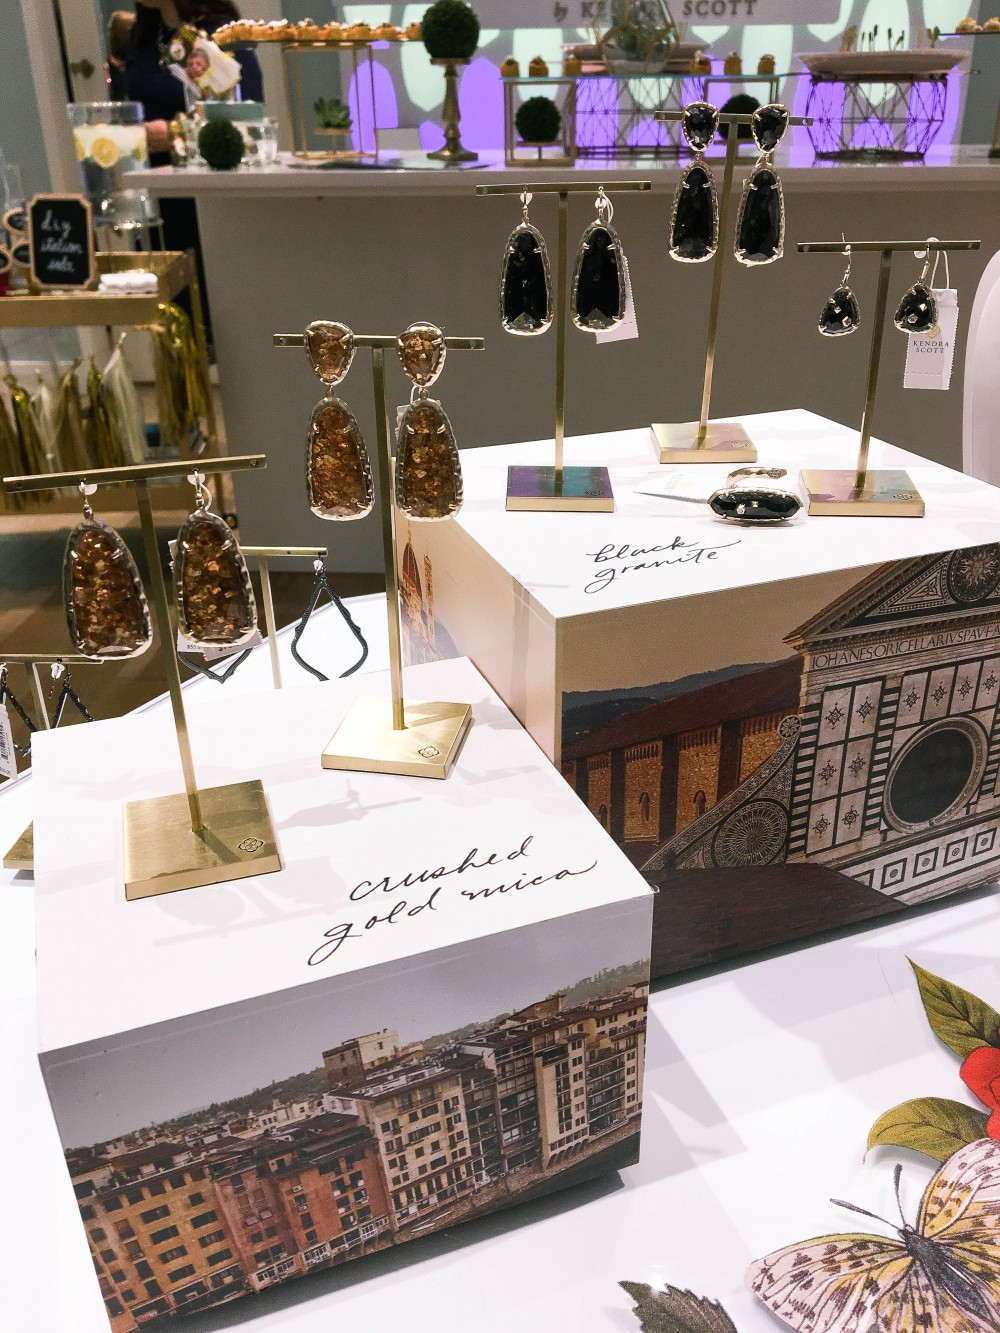 Kendra Scott Fall 2017 Launch Party-Kendra Scott Fall 2017 Collection-Whisk Away to Florence-Inspired by Italy-Bay Area Events-Santana Row-Have Need Want 4